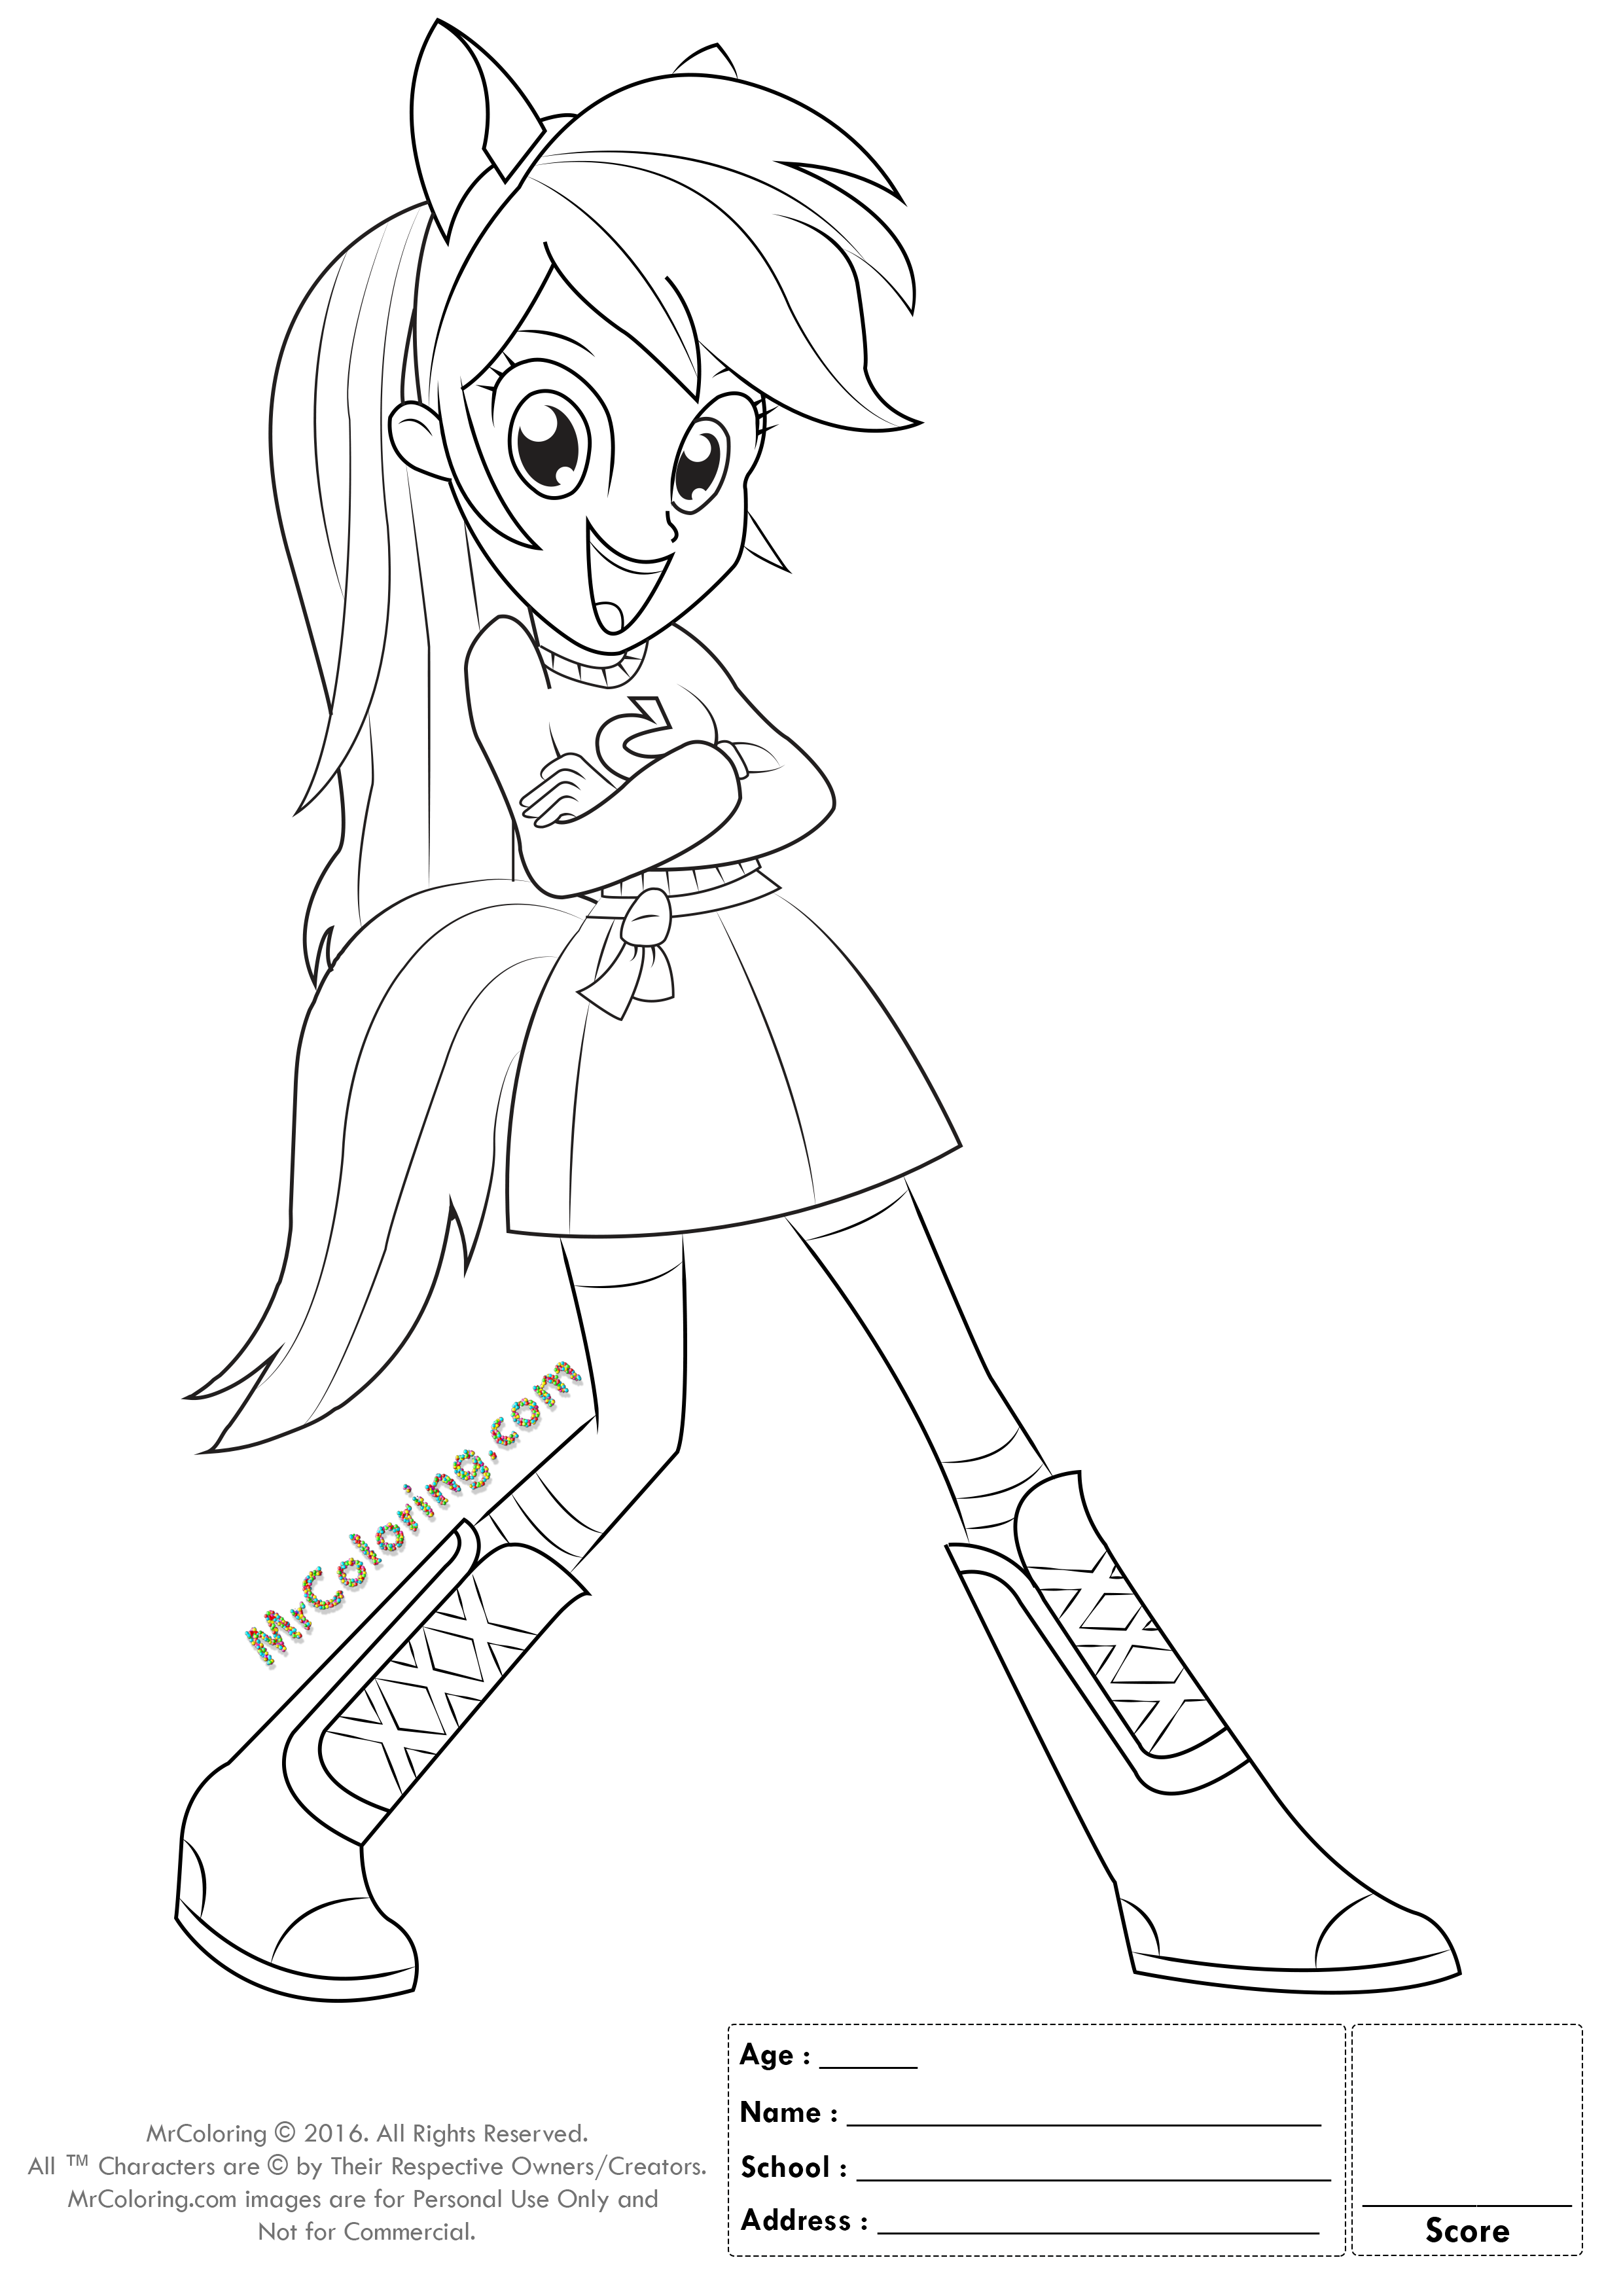 equestria girls mlp coloring page free equestria girls my little pony coloring pages equestria mlp page girls coloring